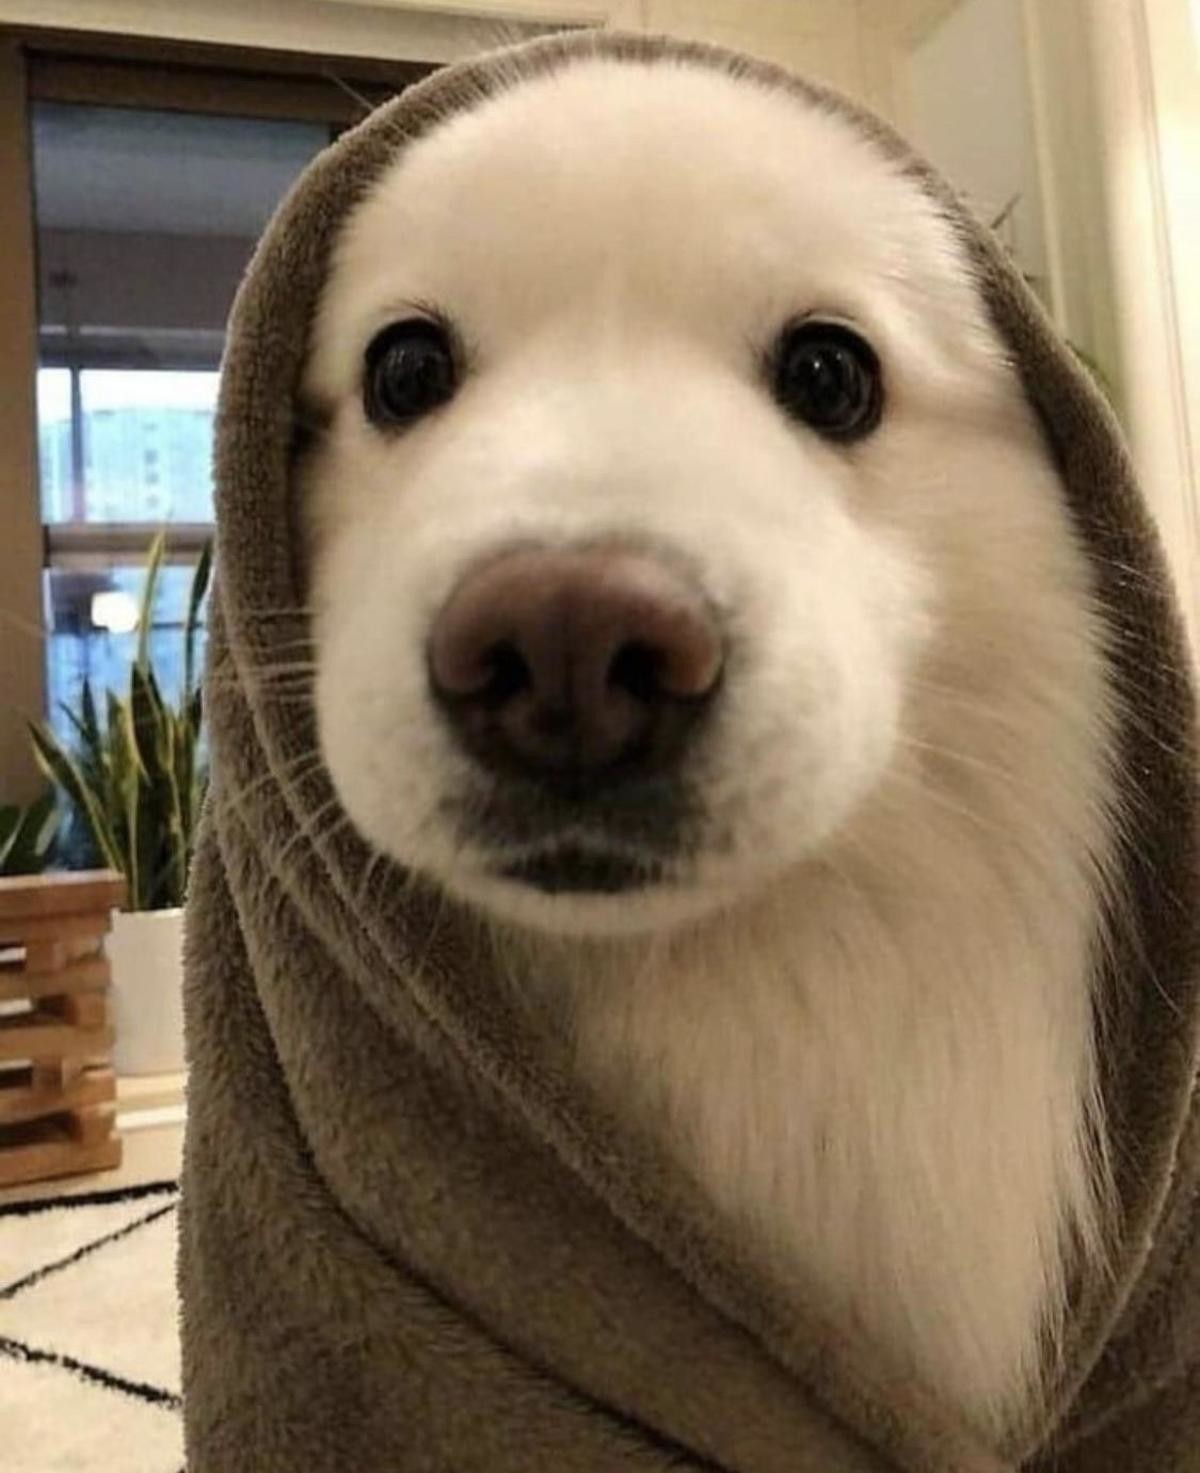 bathing day :3. join list: DoseOfCuteness (977 subs)Mention Clicks: 213252Msgs Sent: 3881218Mention History.. Obi Wan looks hella cute here